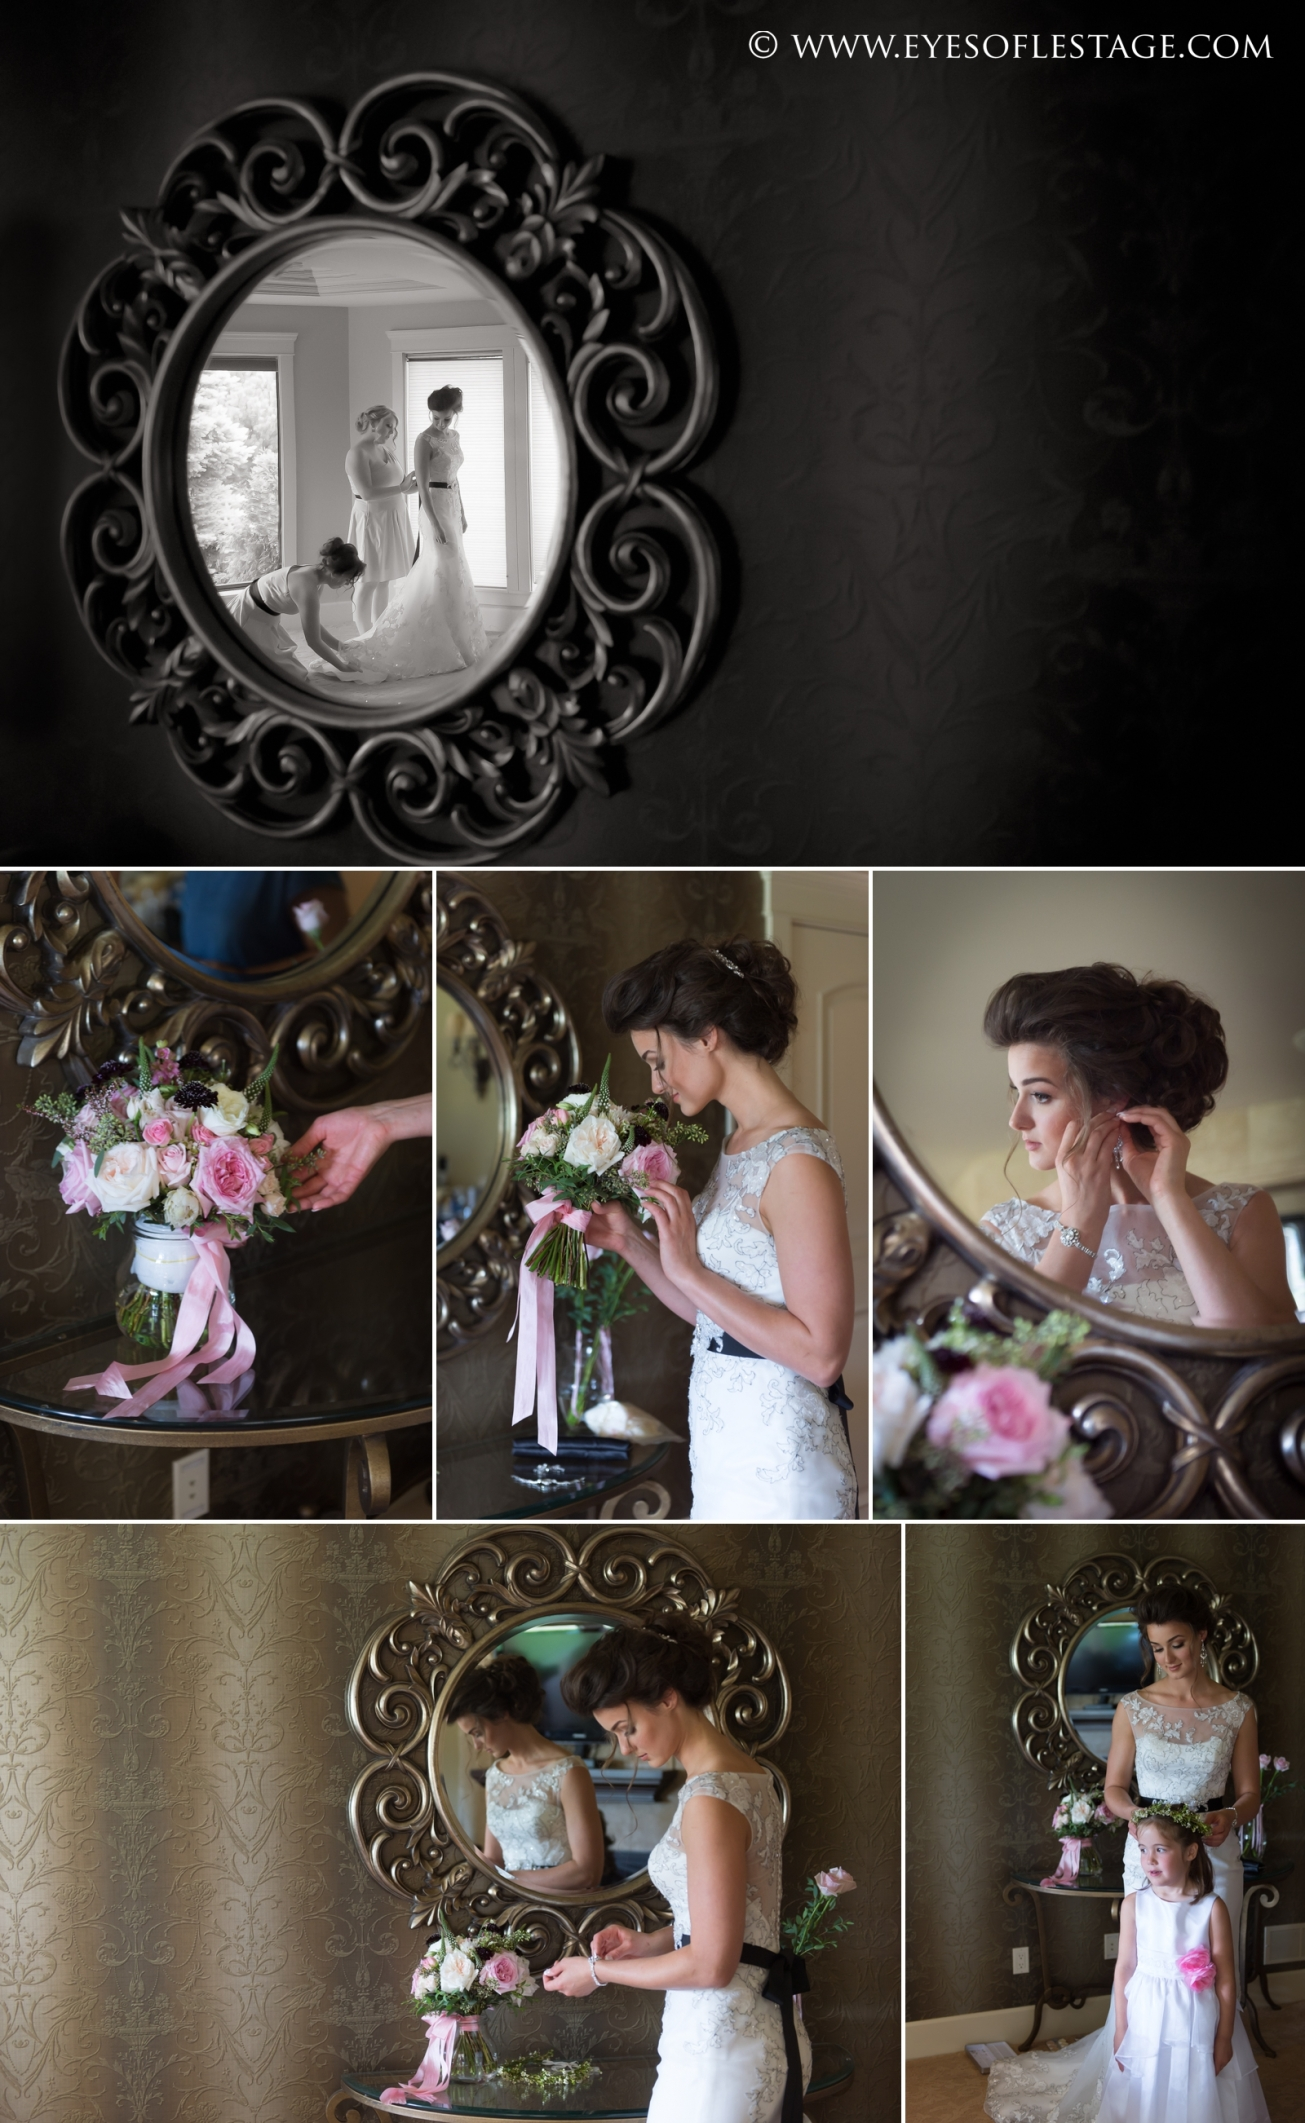 Kelowna Vernon Wedding Photography - Suzanne Le Stage - Durali Villa 4